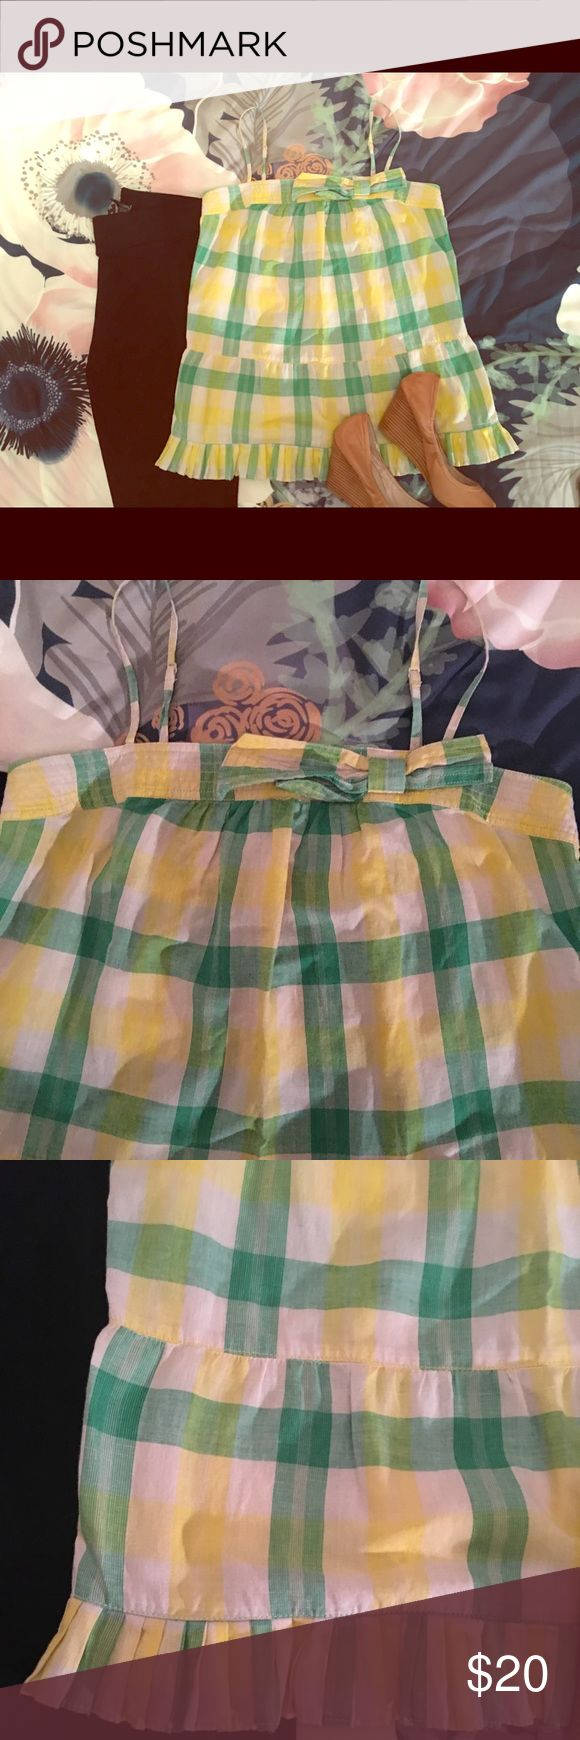 Juicy Couture Plaid Green and Yellow Tank Top Juicy Couture Plaid Green and Yellow Tank Top. Bow detail. Size 10. Juicy Couture Tops Tank Tops